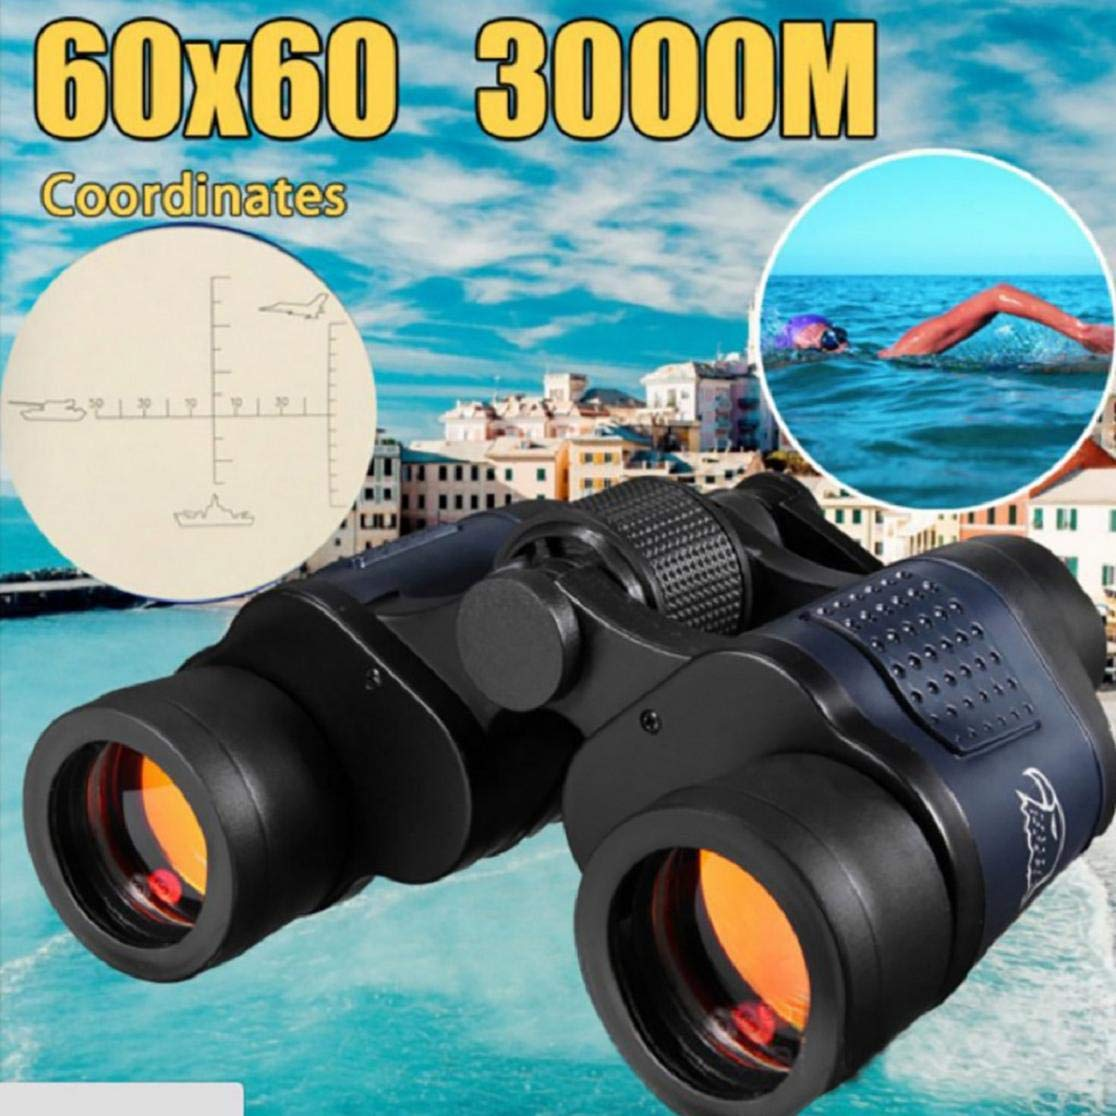 Vacally 20x50 HD Binoculars Telescope 10Times Night Vision High Power Multilayer Coating,High Definition Spotting Scope with Zoom - Fully Multi Coated Optical Glass Lens,Includes Tripod by Vacally